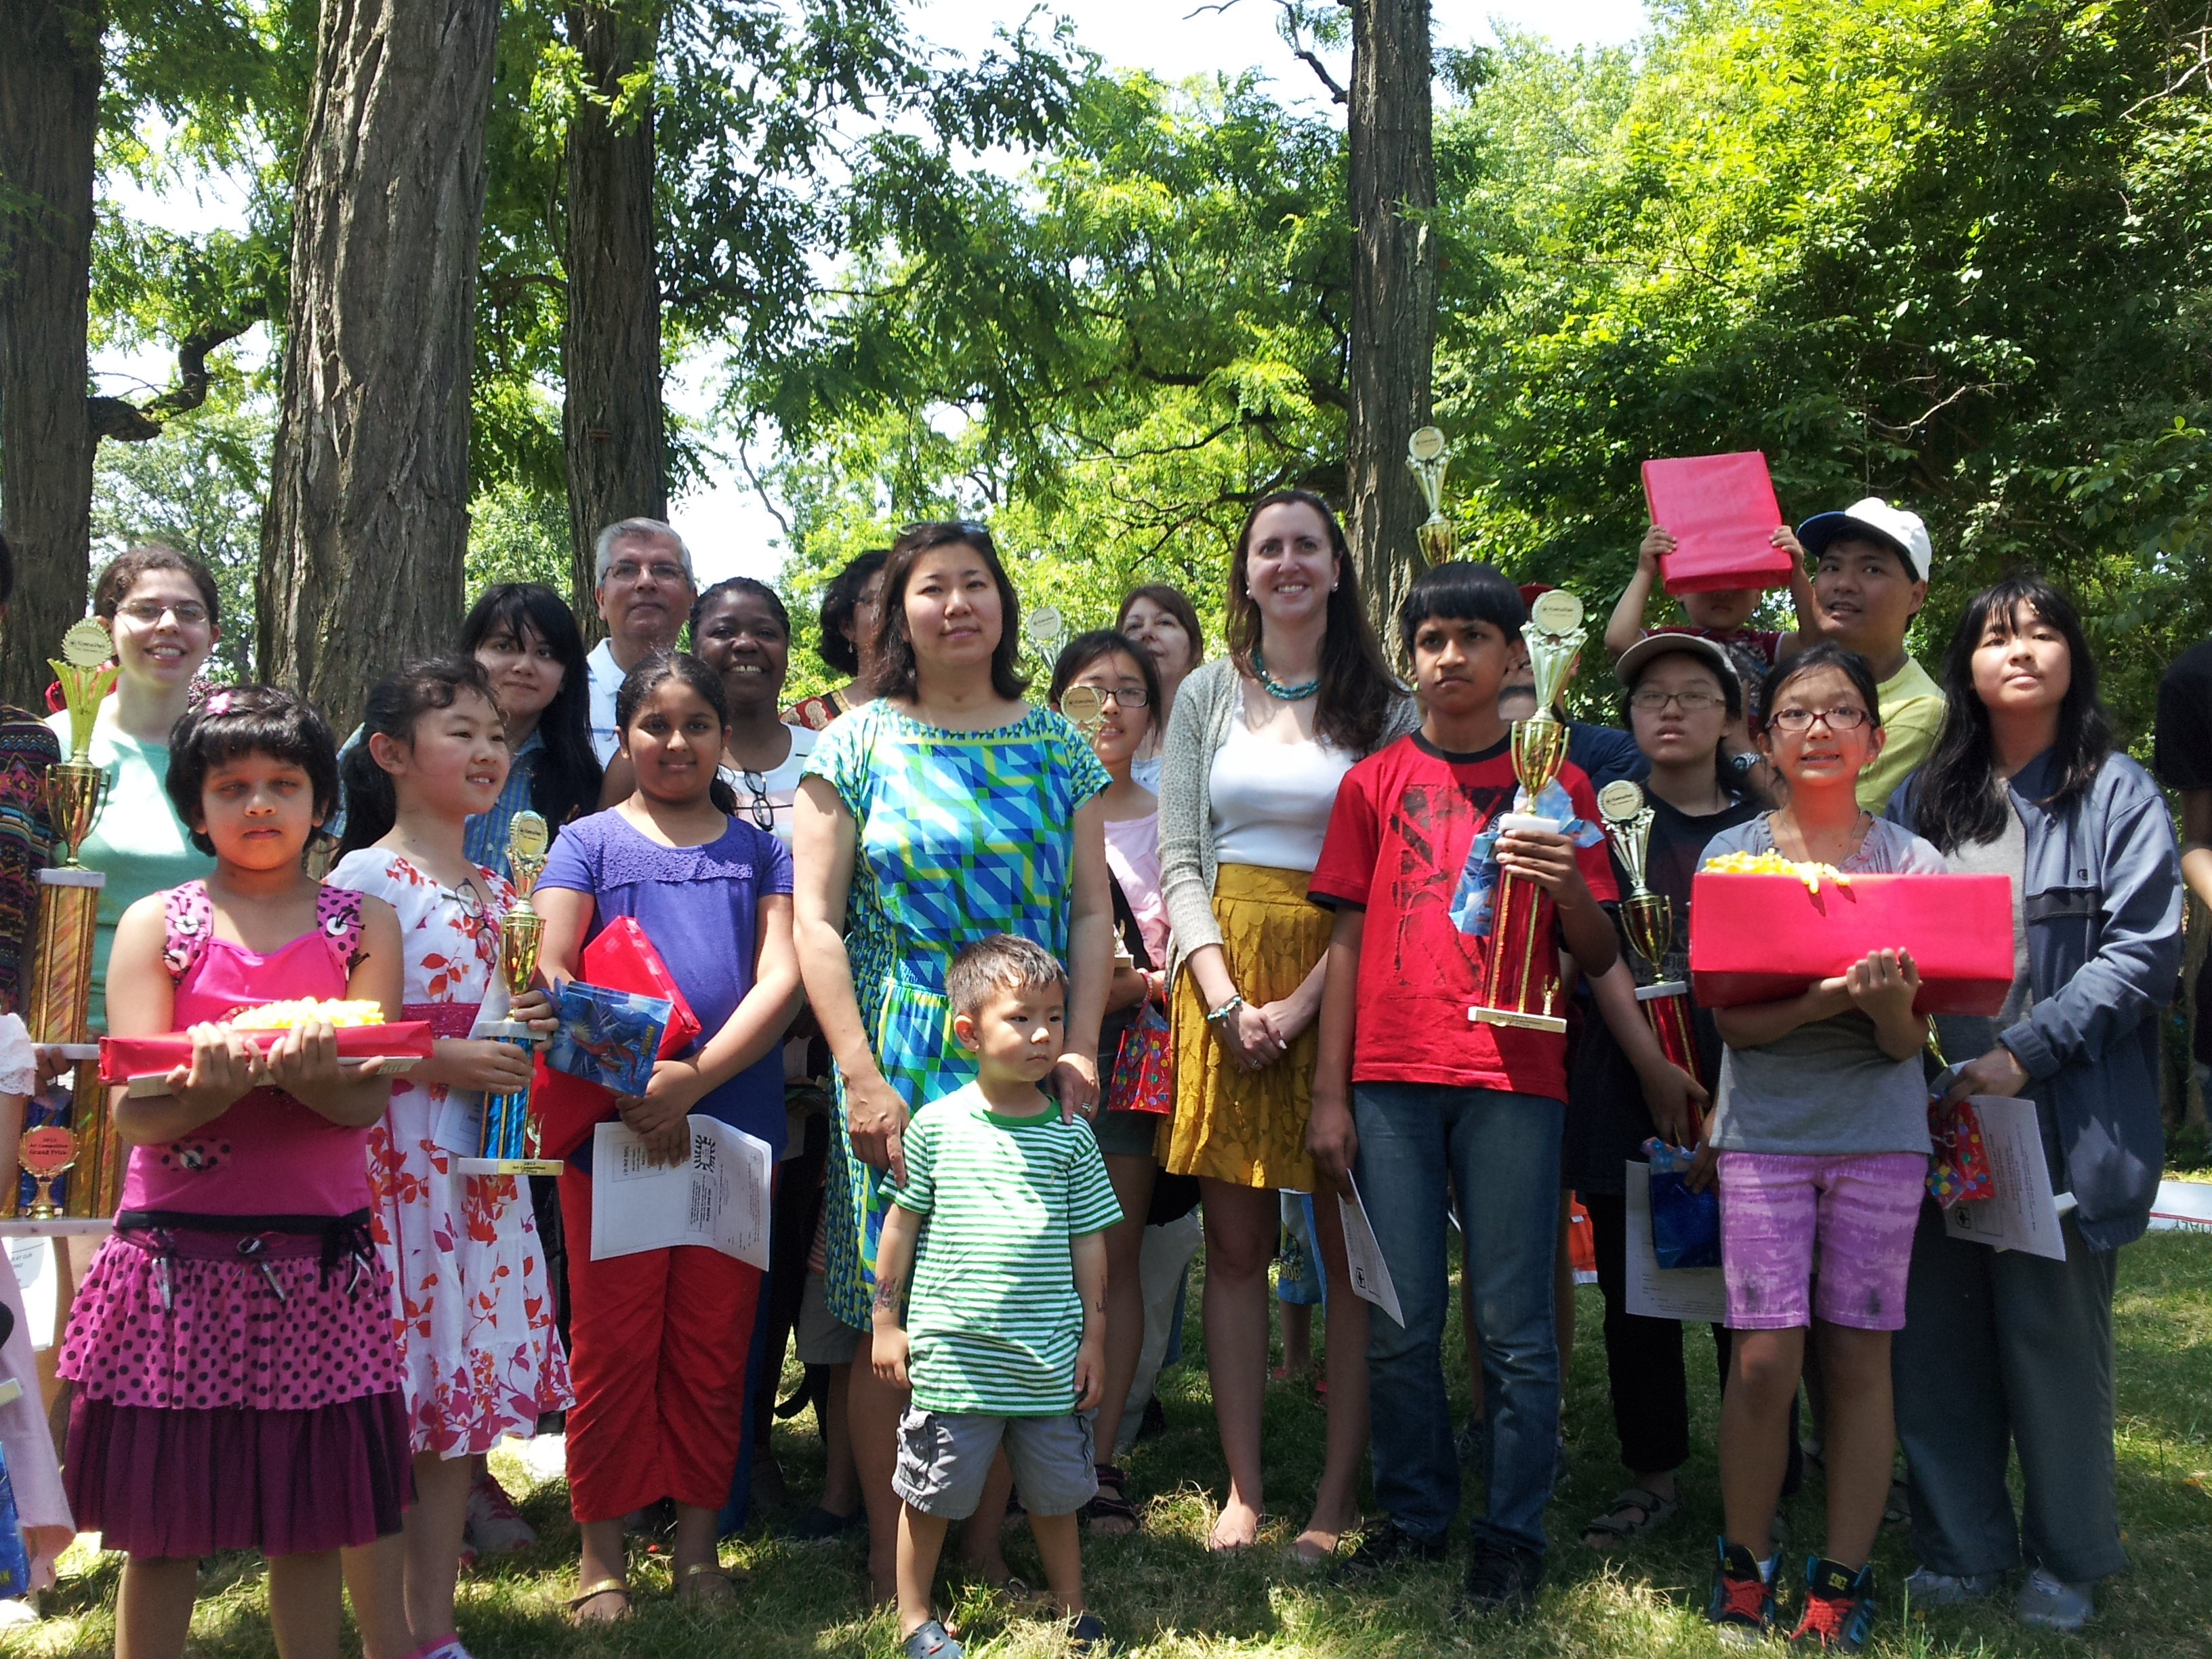 Assemblywoman Nily Rozic co-sponsored the annual Kissena Park Civic Association art contest, and distributed awards with Congresswoman Grace Meng.